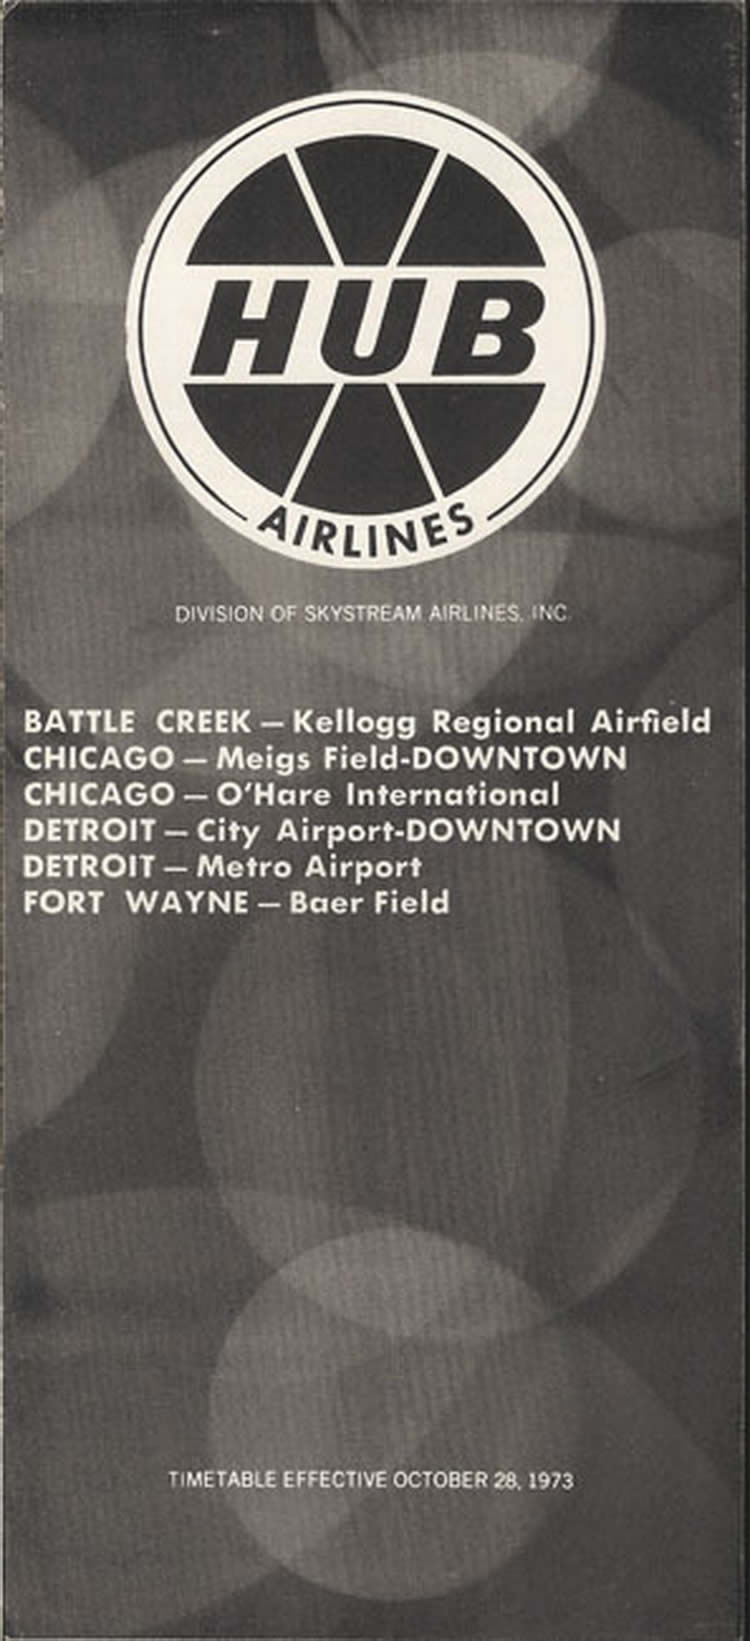 vintage airline timetable for HUB Airlines